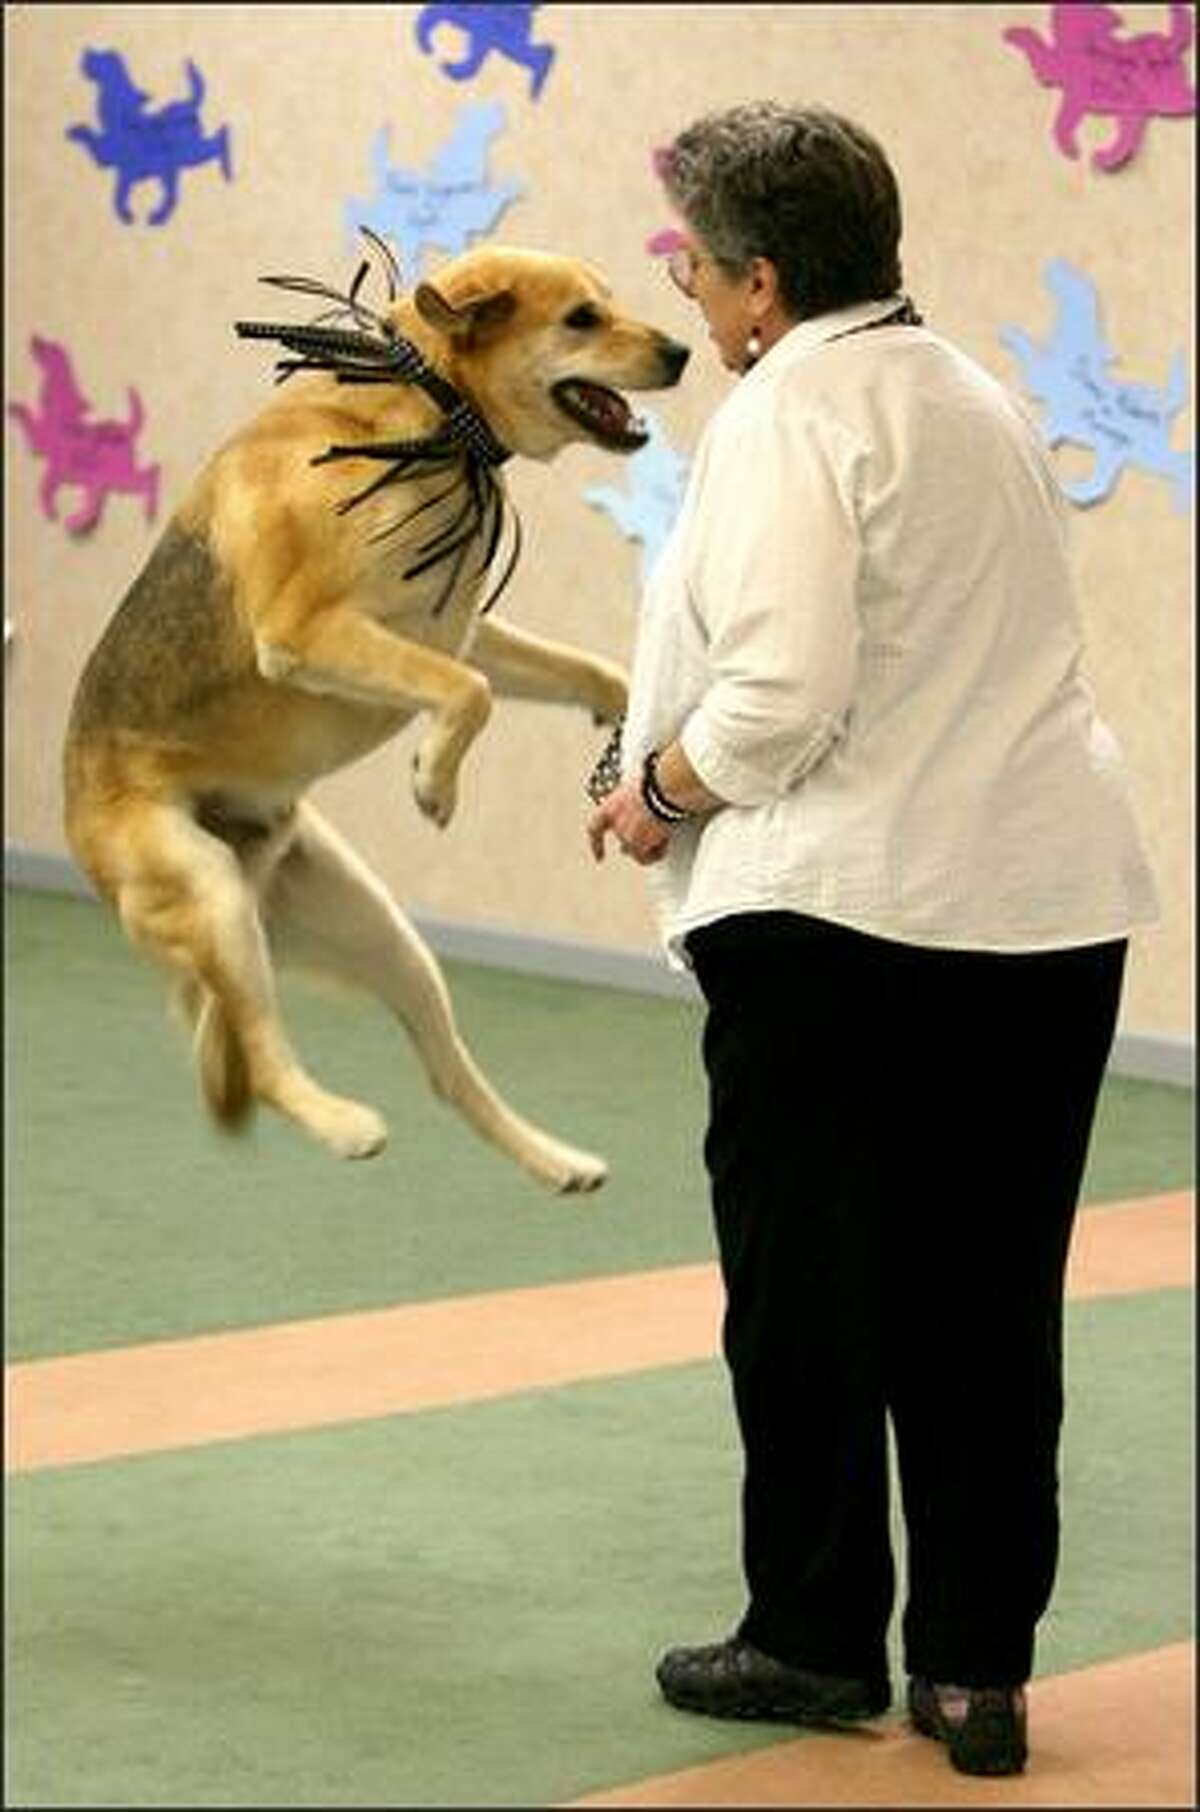 Joan Ethier of Port Angeles dances with Lab mix Yukon King in the novice division of the musical freestyle class. Yukon King was one of more than 140 dogs and their U.S./Canadian owners dancing the mambo, cha cha, waltz, hip-hop and other styles during the